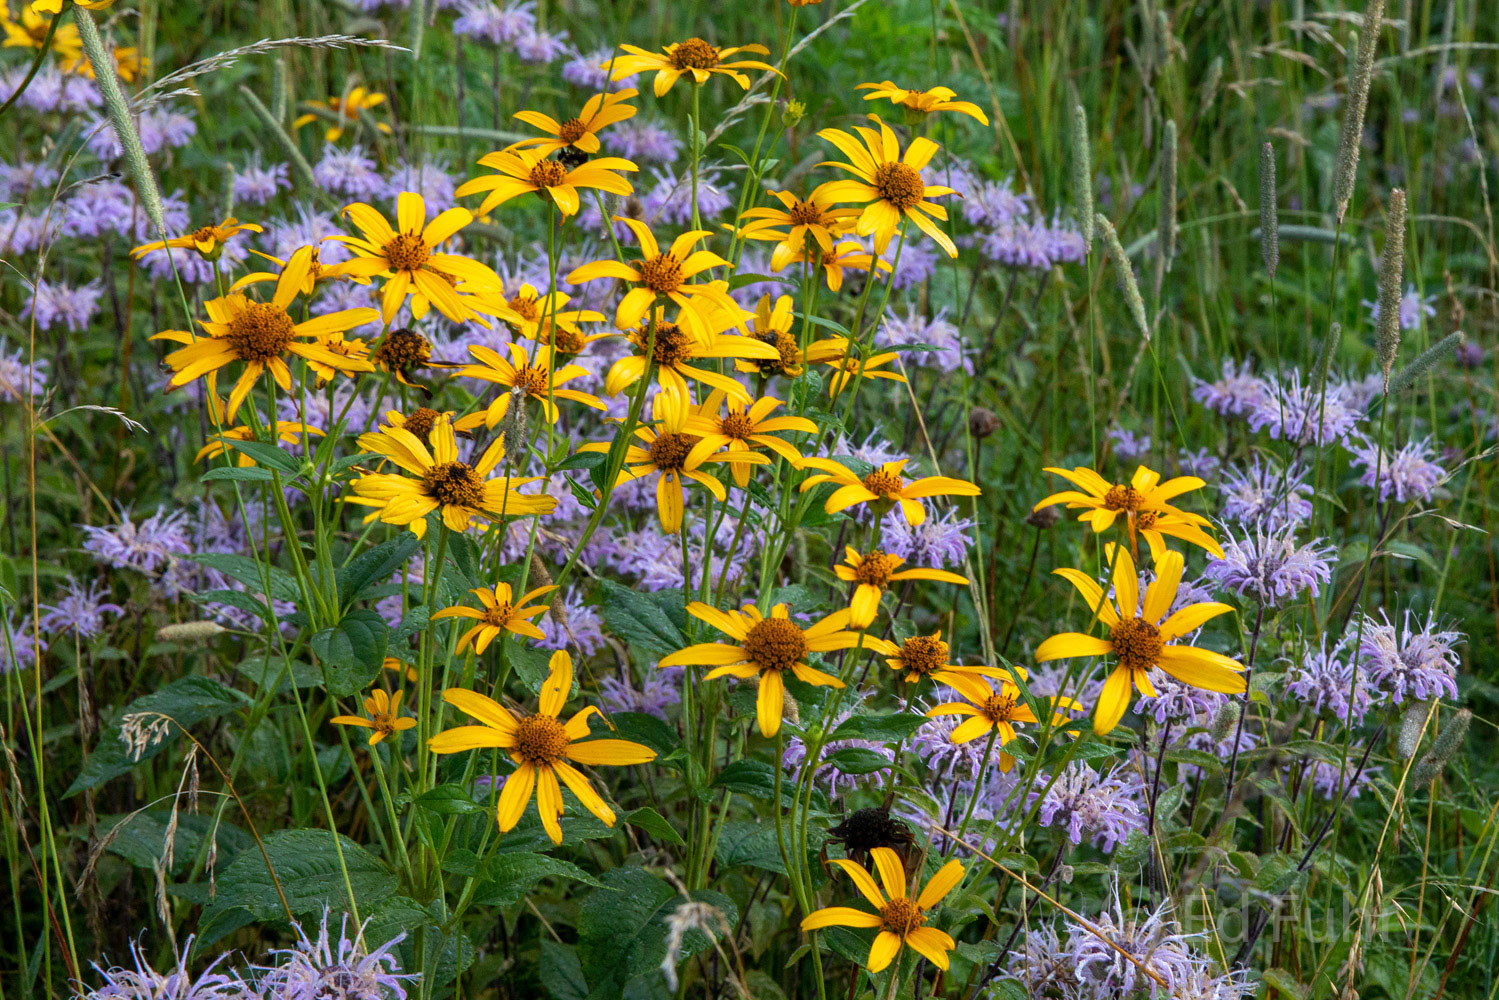 Helianthus and Asters